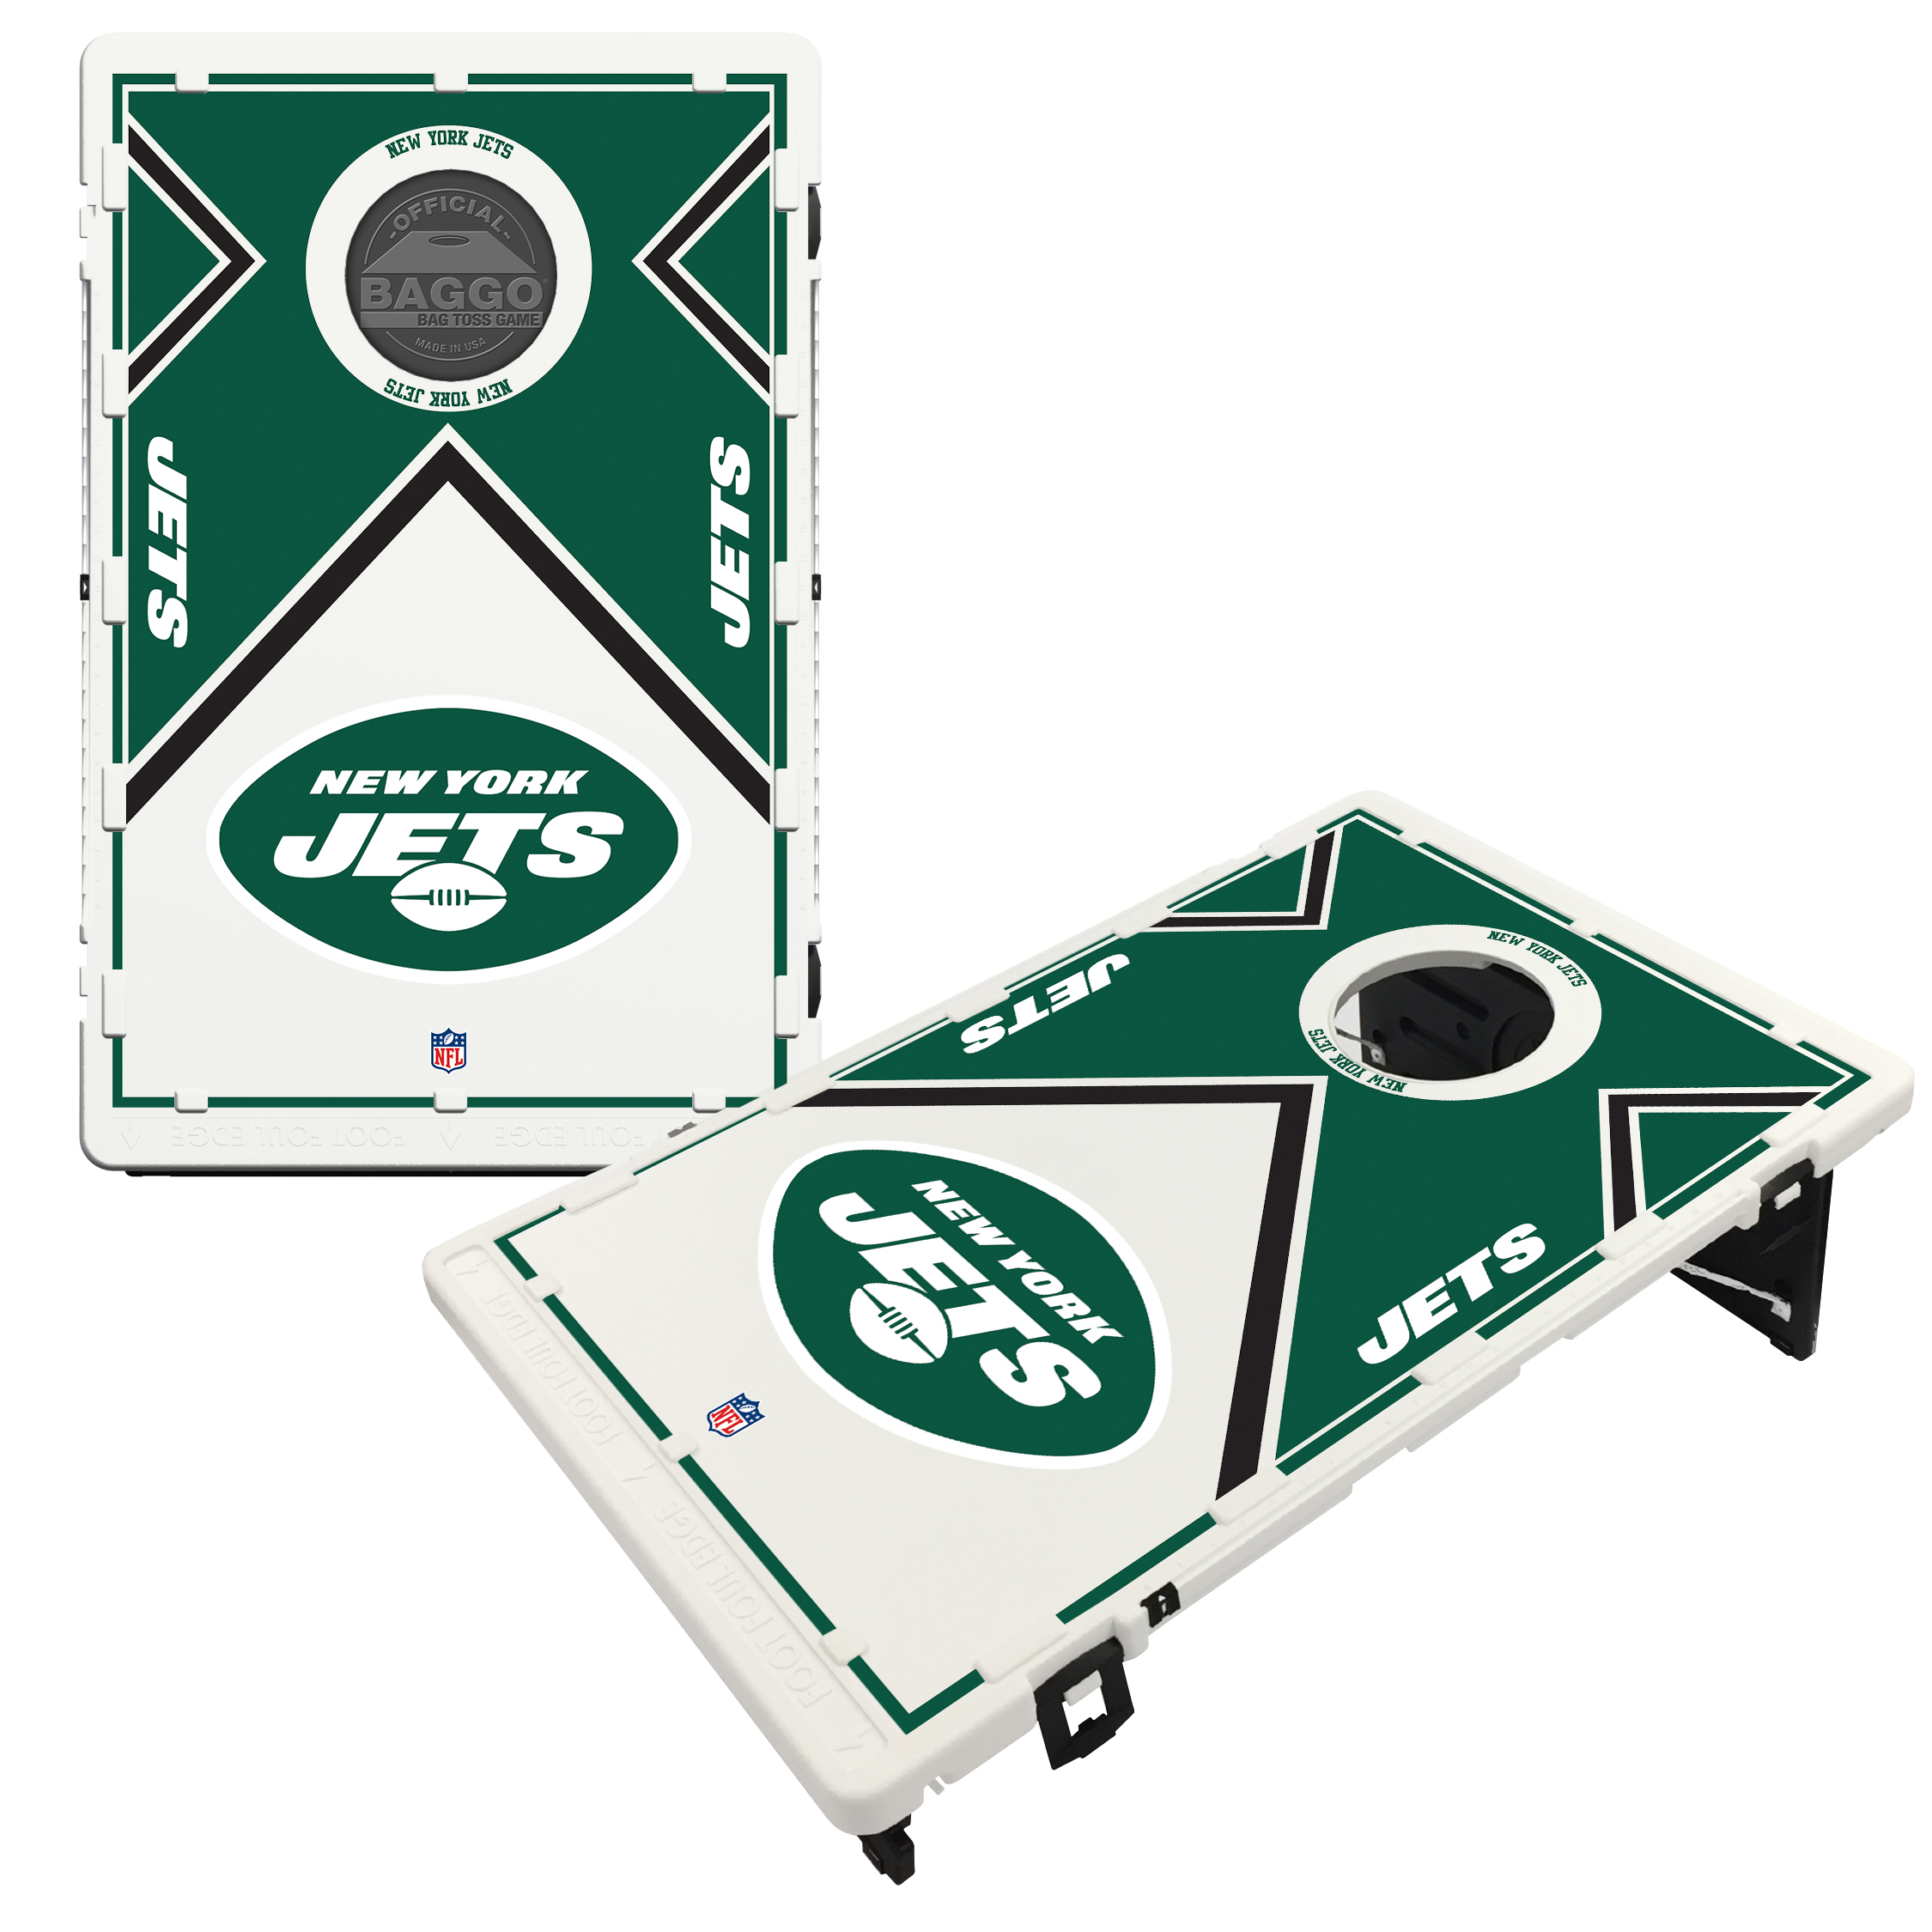 New York Jets Team Store, New York Jets Tailgate Games